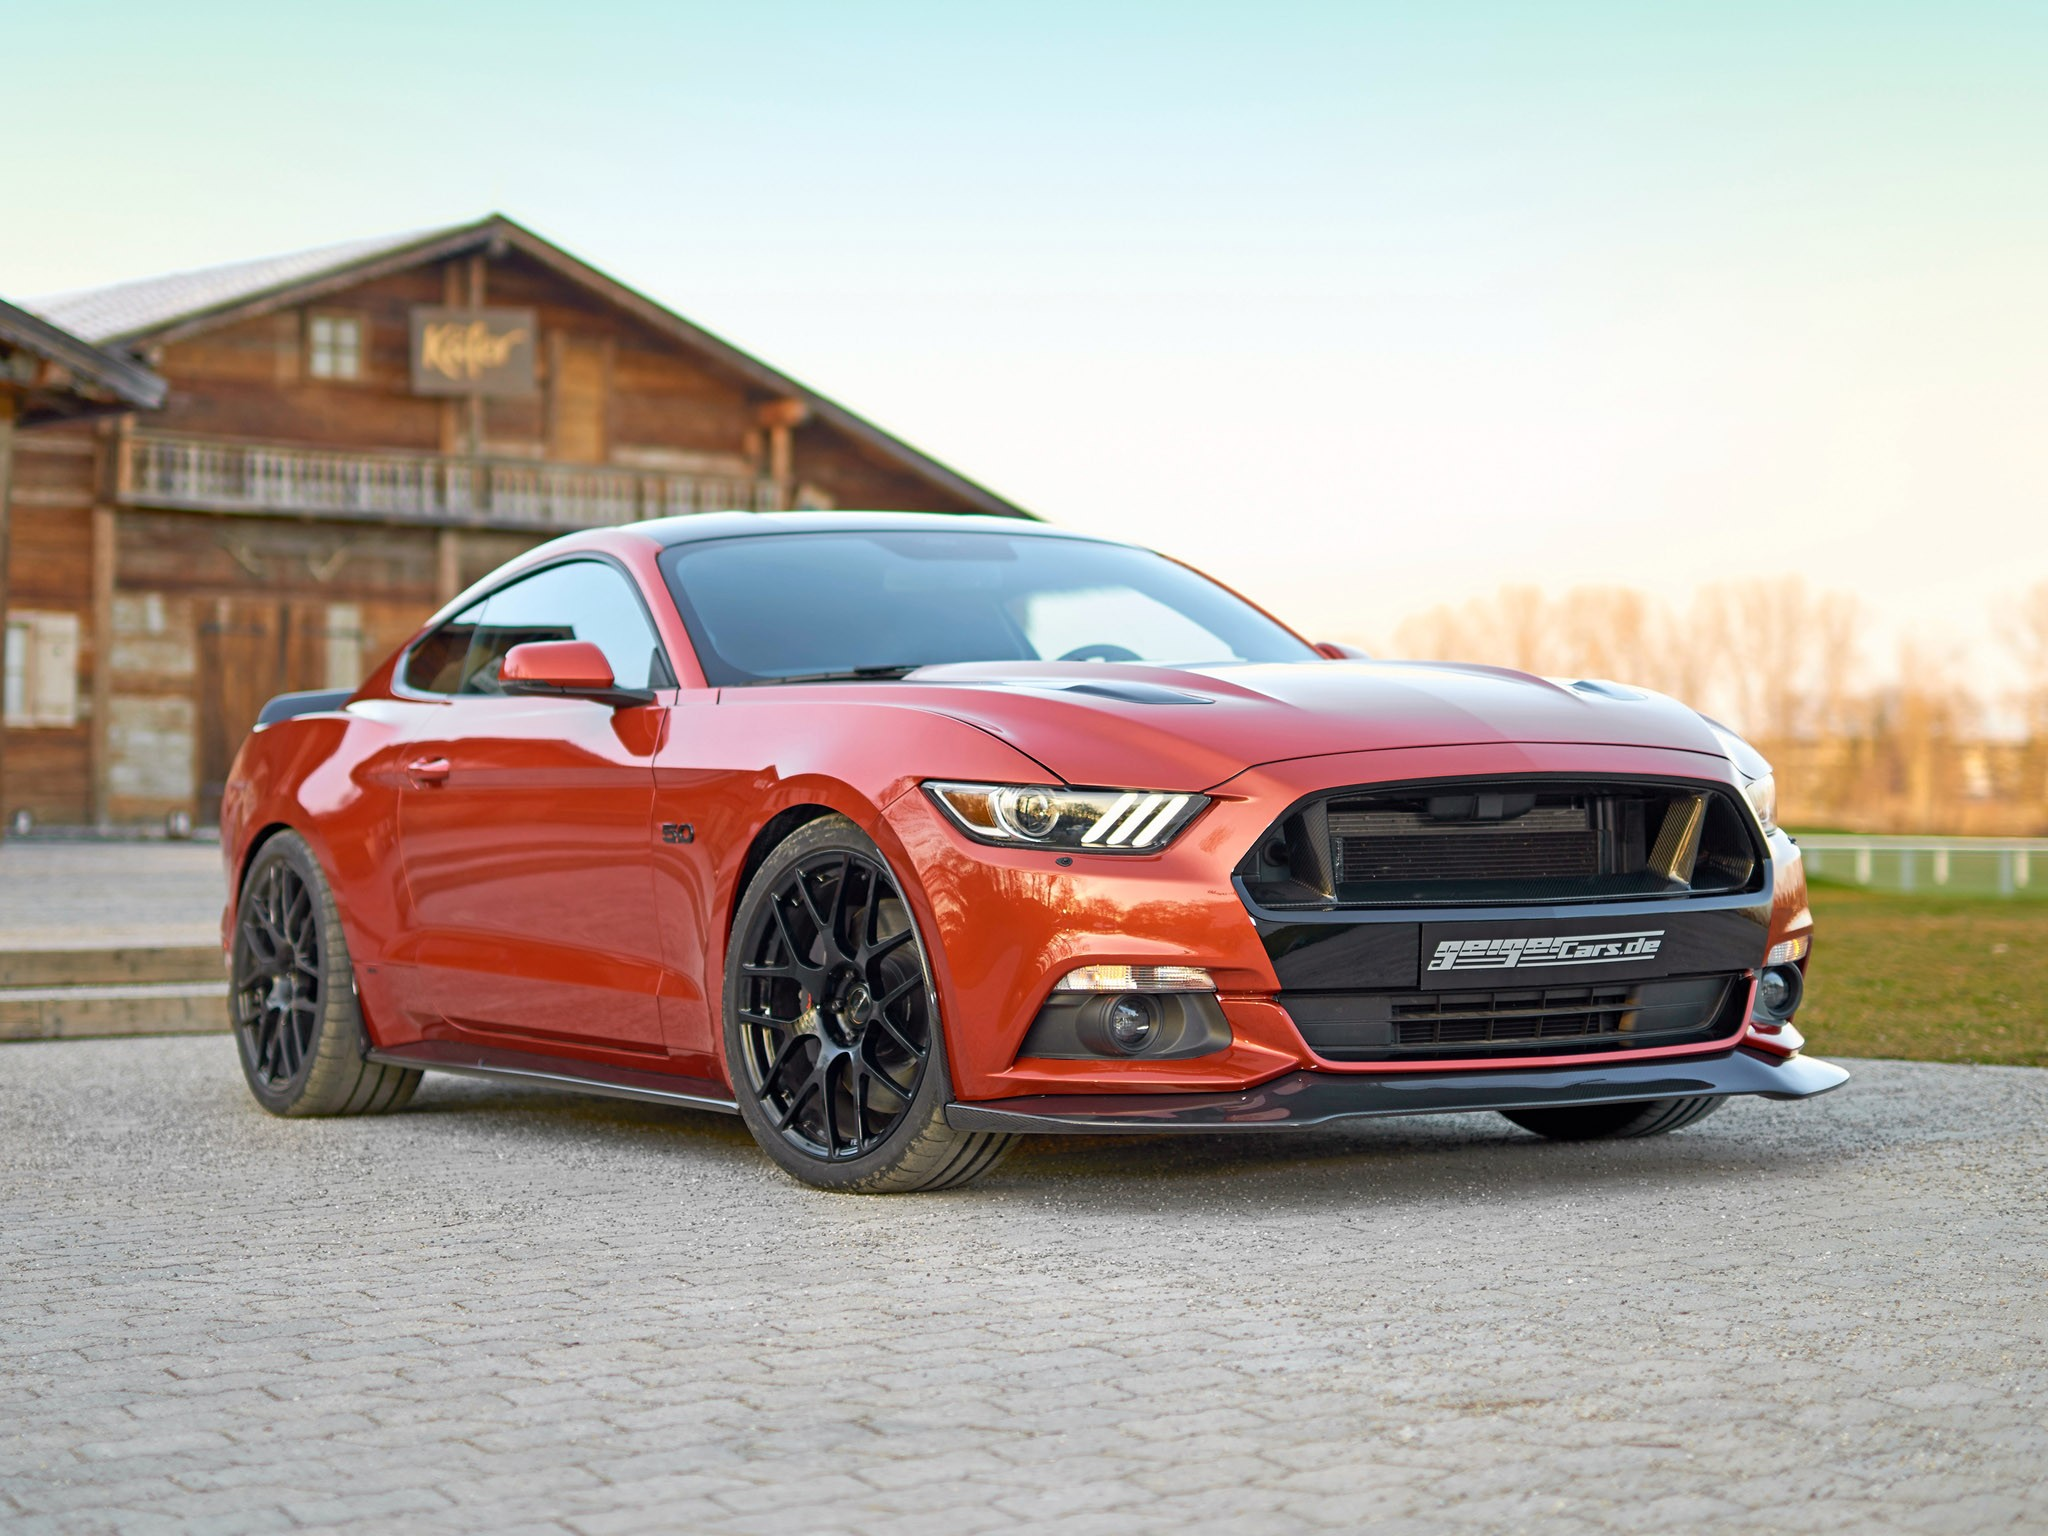 2016 Geigercars - Ford Mustang GT820